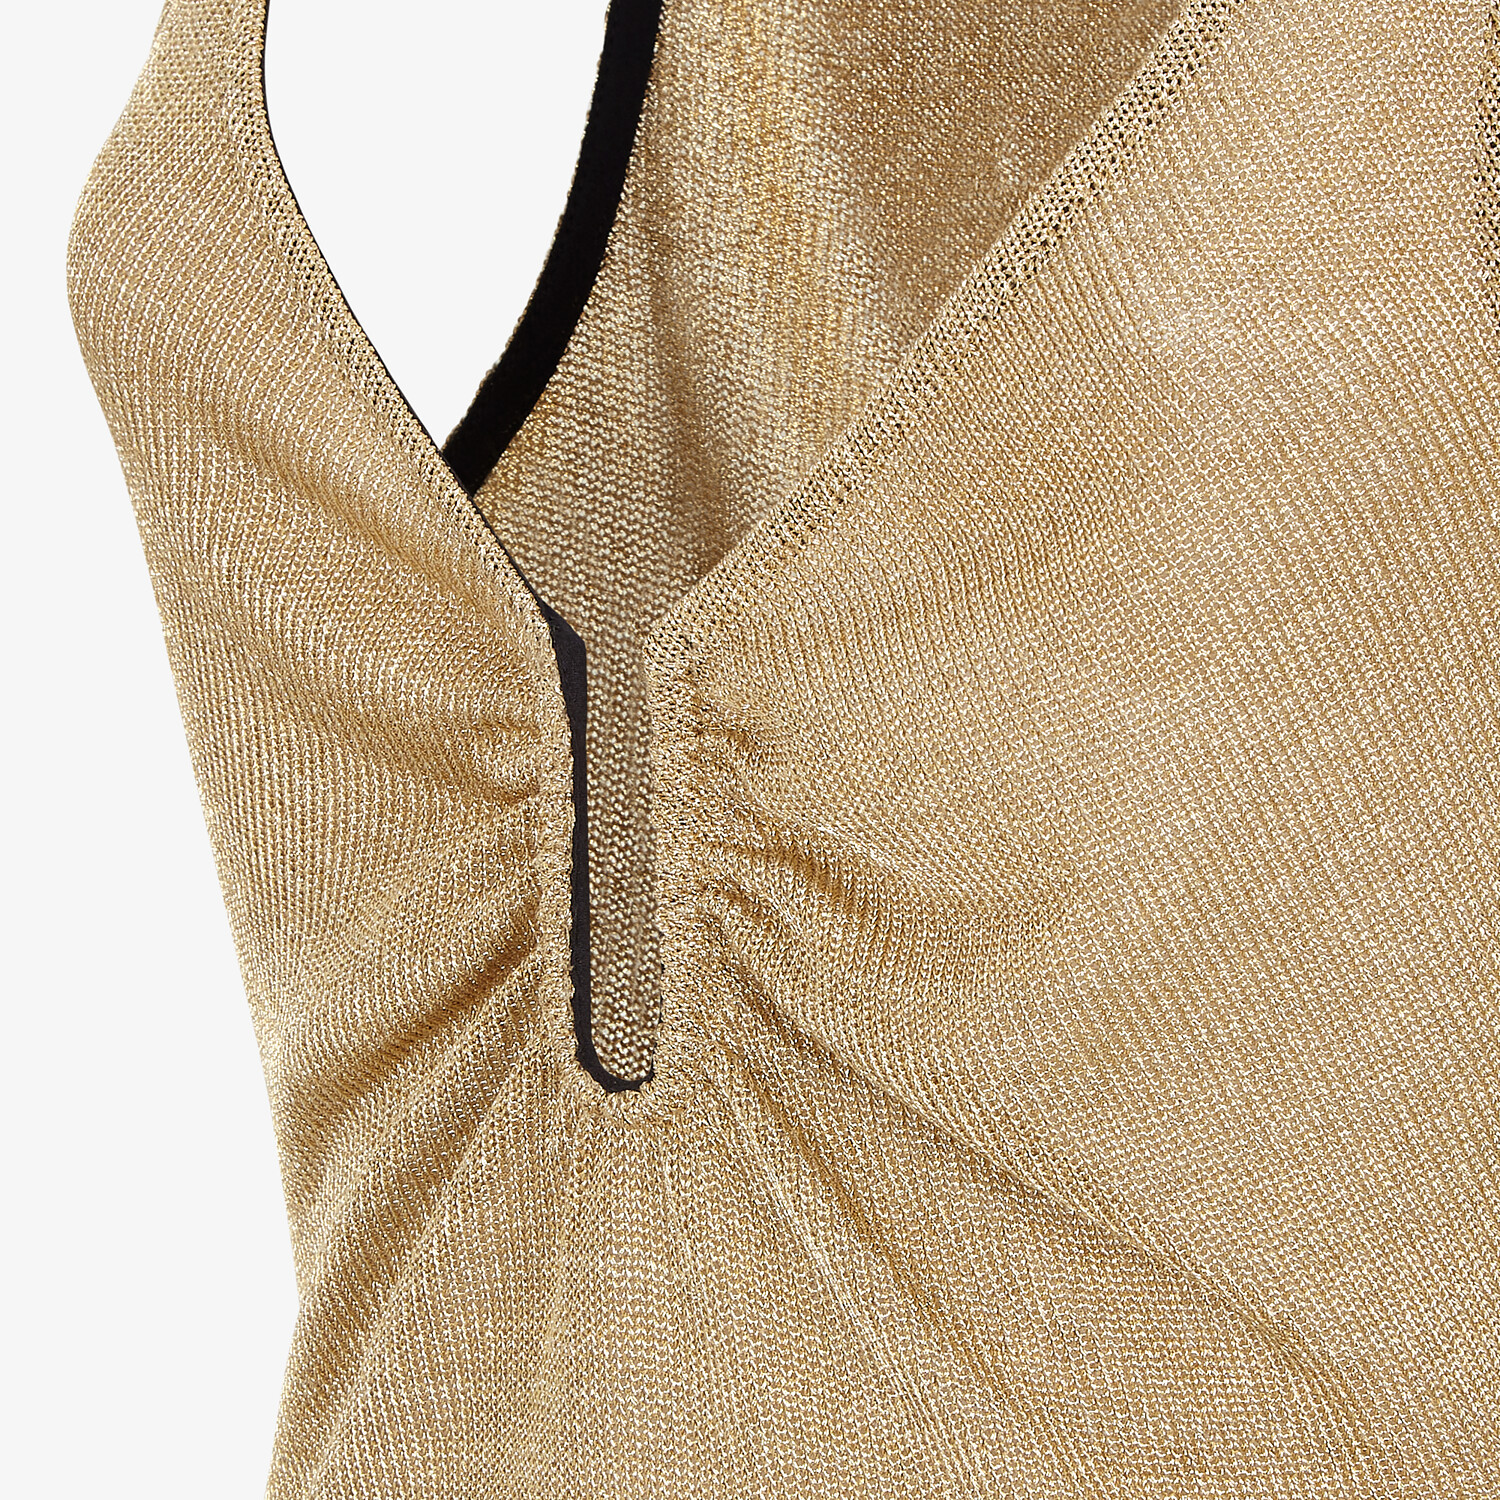 FENDI TOP - Gold Lurex top - view 3 detail